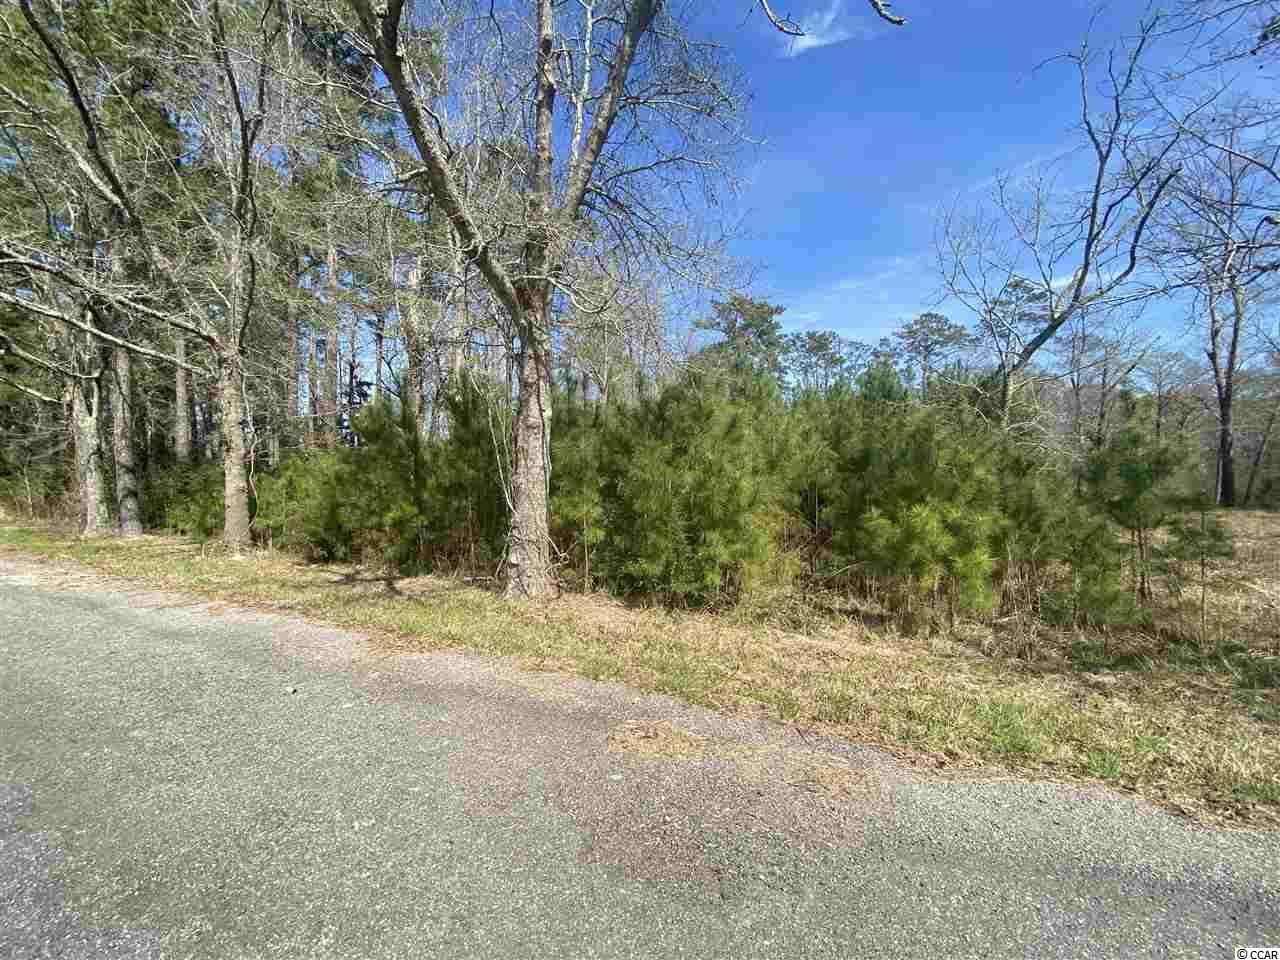 Waterfront lot located just a short drive to Bucksport Marina. Wooded deep water lot will make a nice homesite on the Waccamaw river which also serves as the intra-coastal waterway. Short boat ride to many waterfront experiences from Georgetown to Little River.